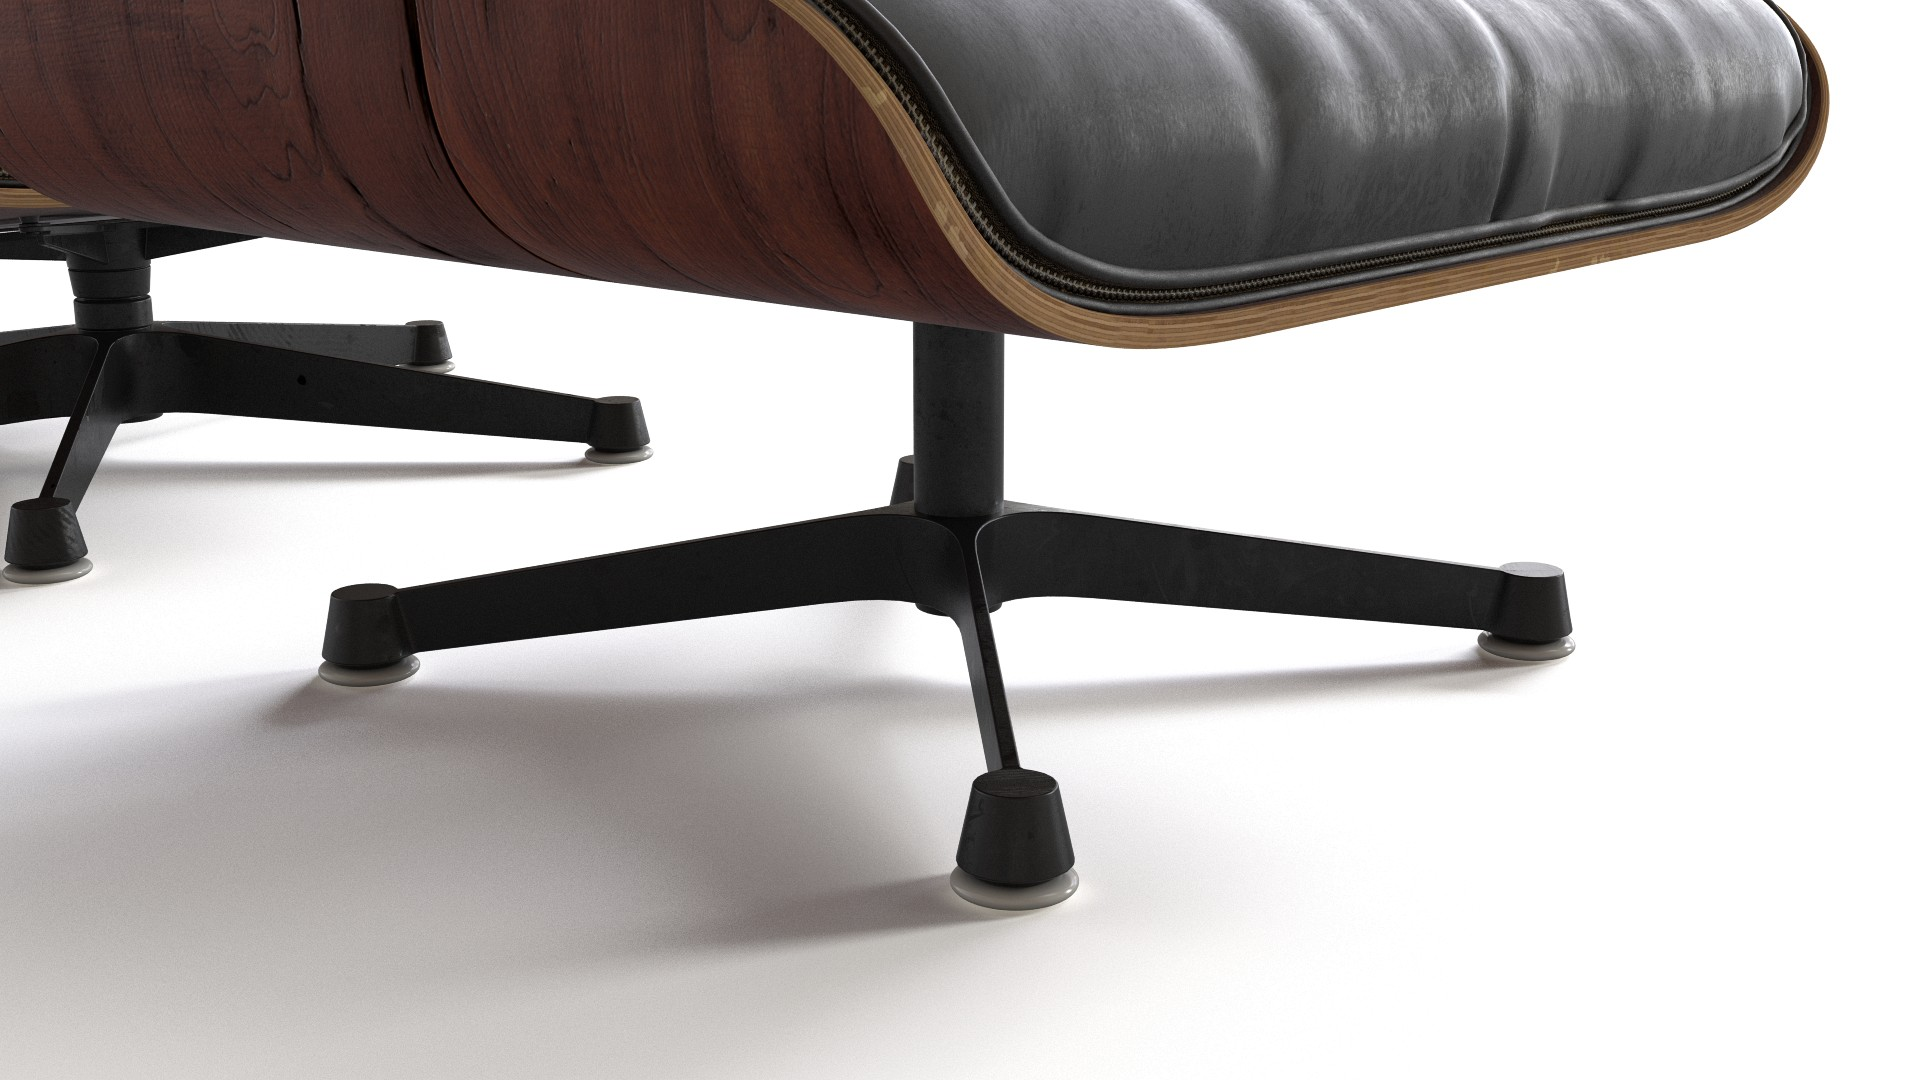 eames lounge chair with ottoman - Eames Lounge Chair And Ottoman